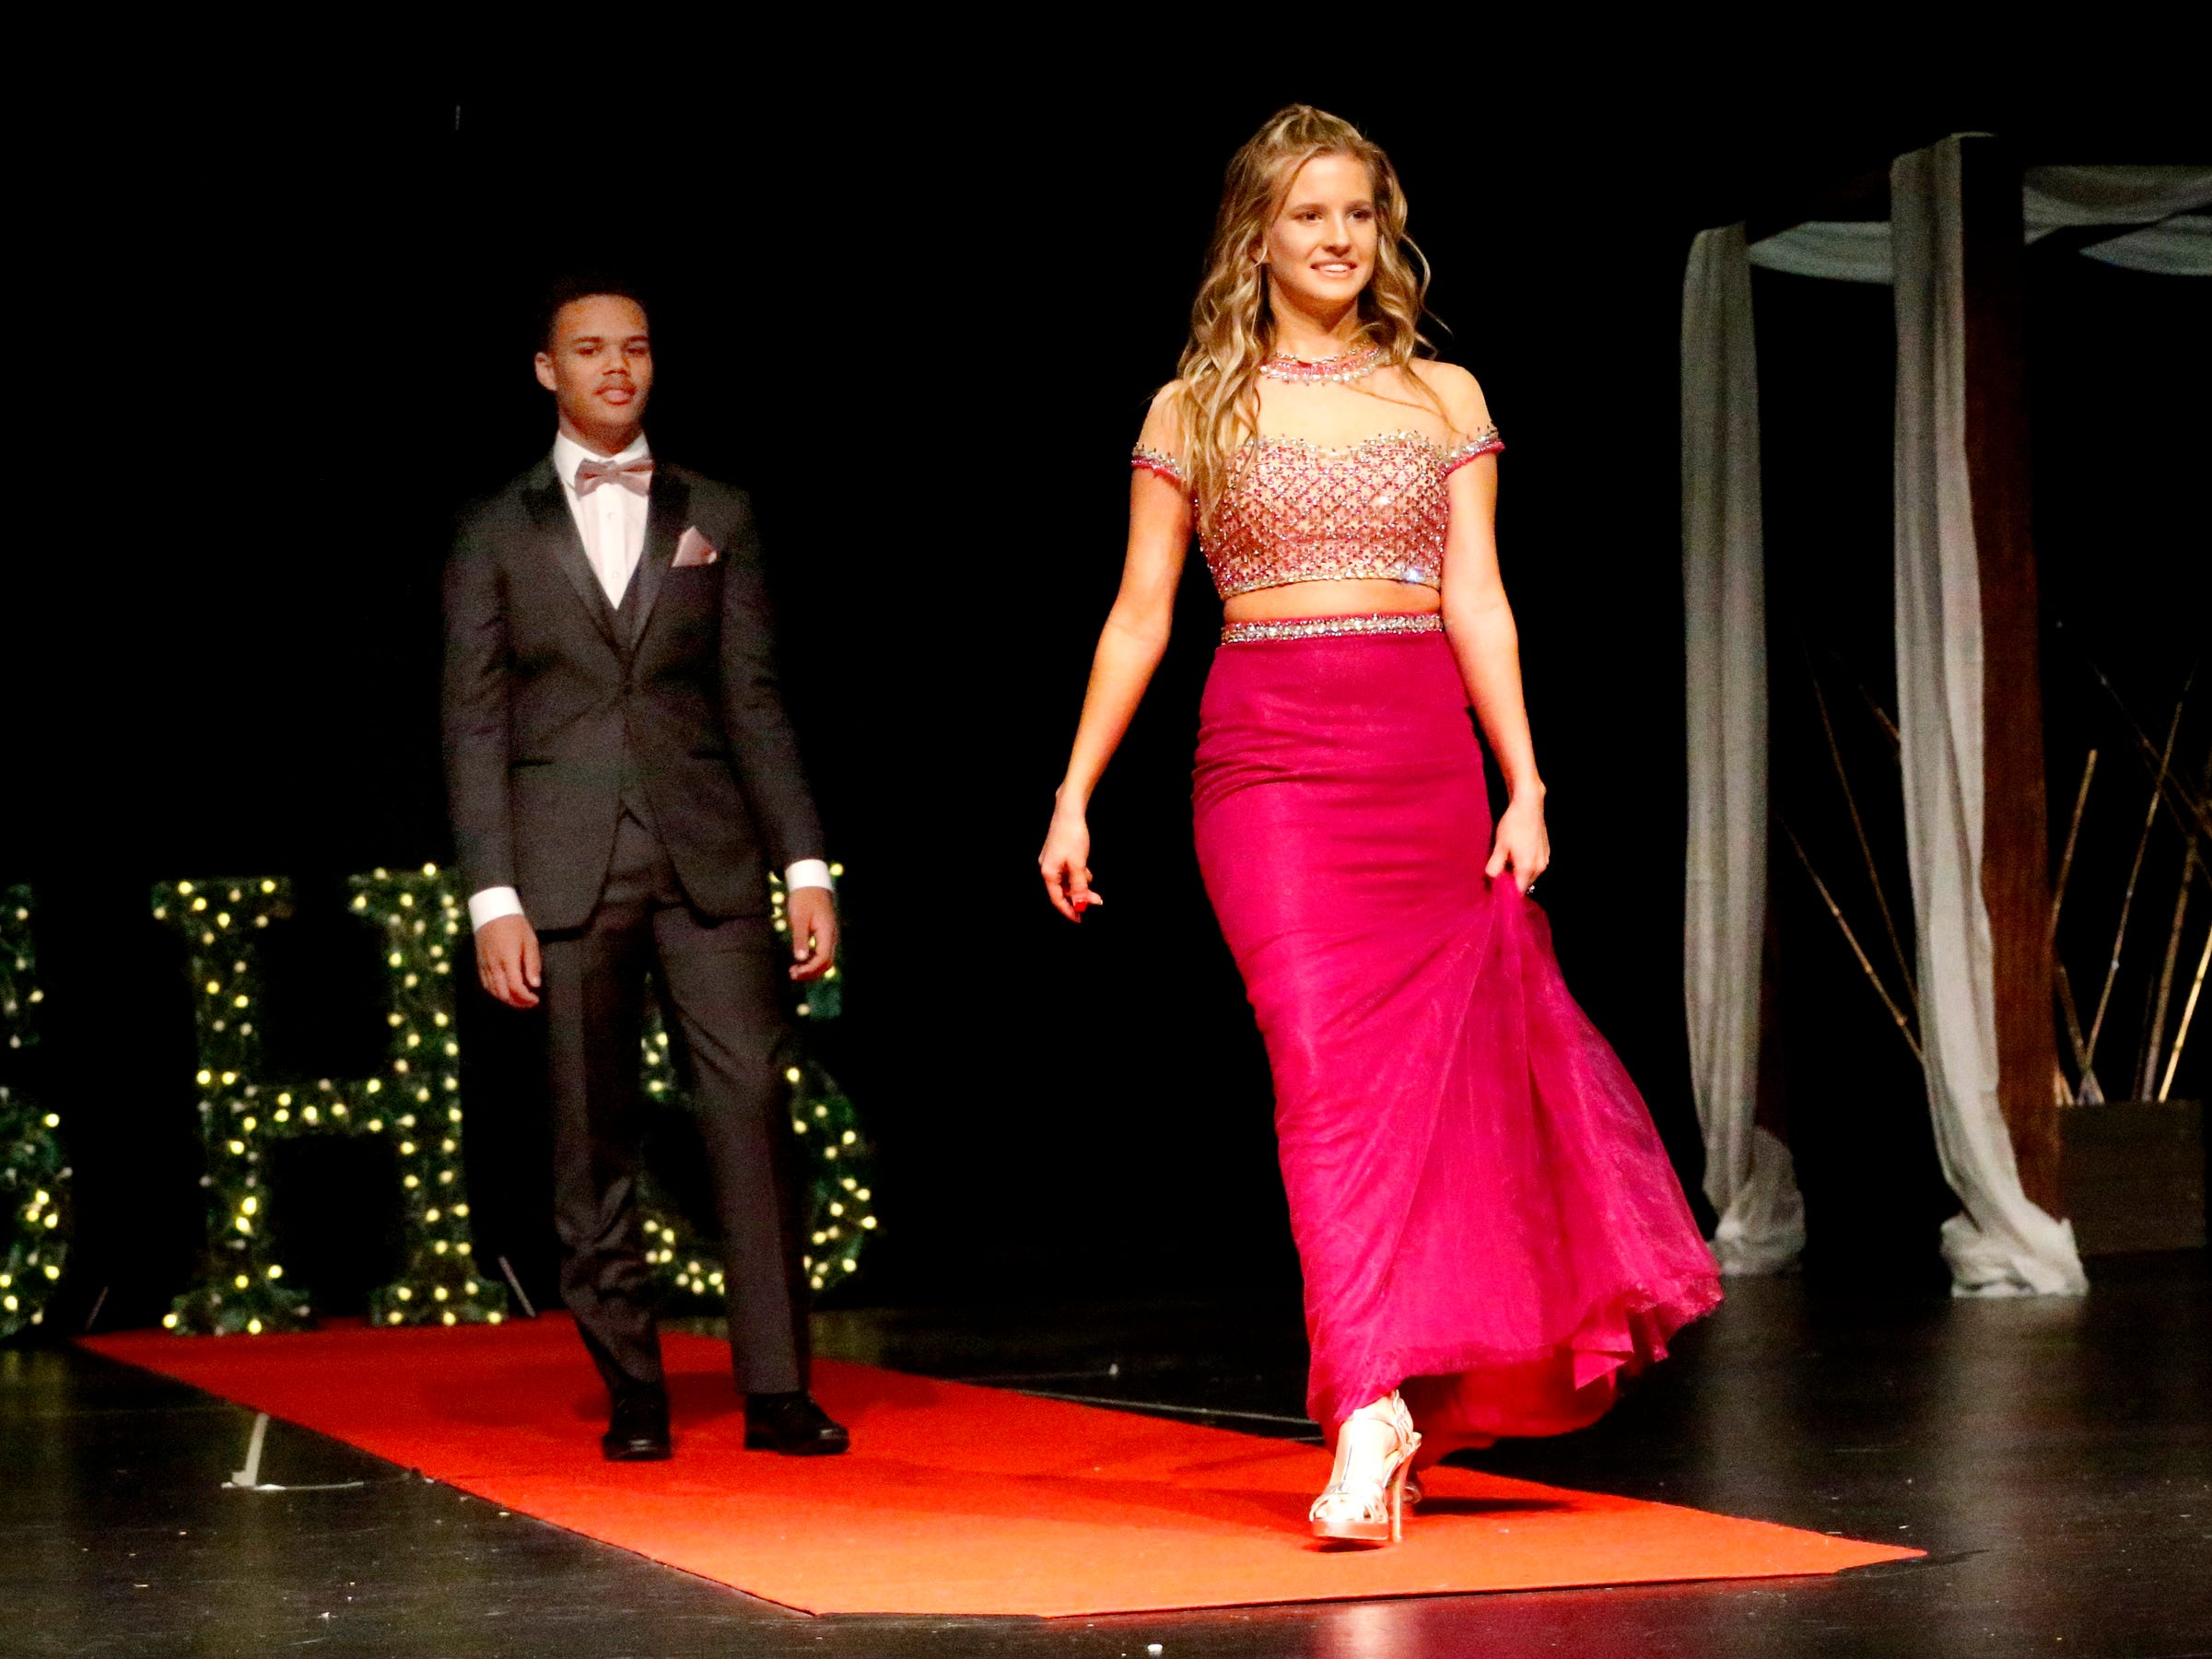 Sara Jarrell steps forward to show off her dress as Cory Cury waits to show off his tux during the Siegel Prom Fashion show on Thursday, Feb. 14, 2019.